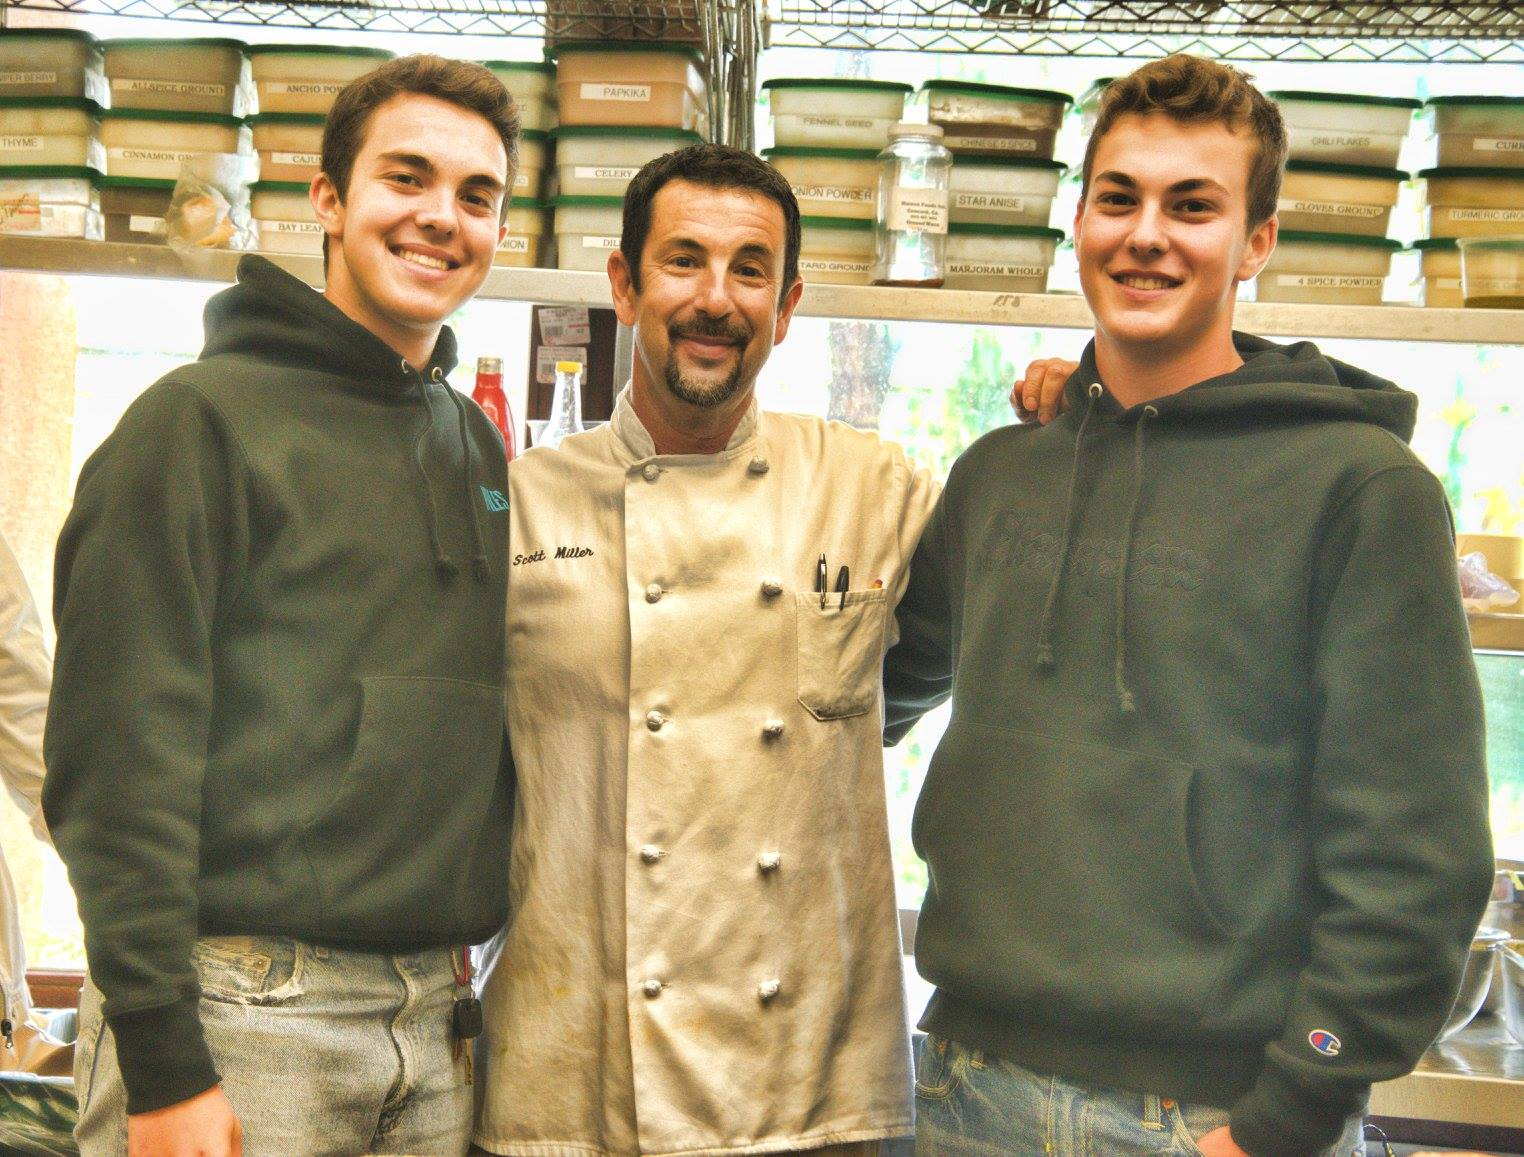 mhf chef scott miller with sons max and josh